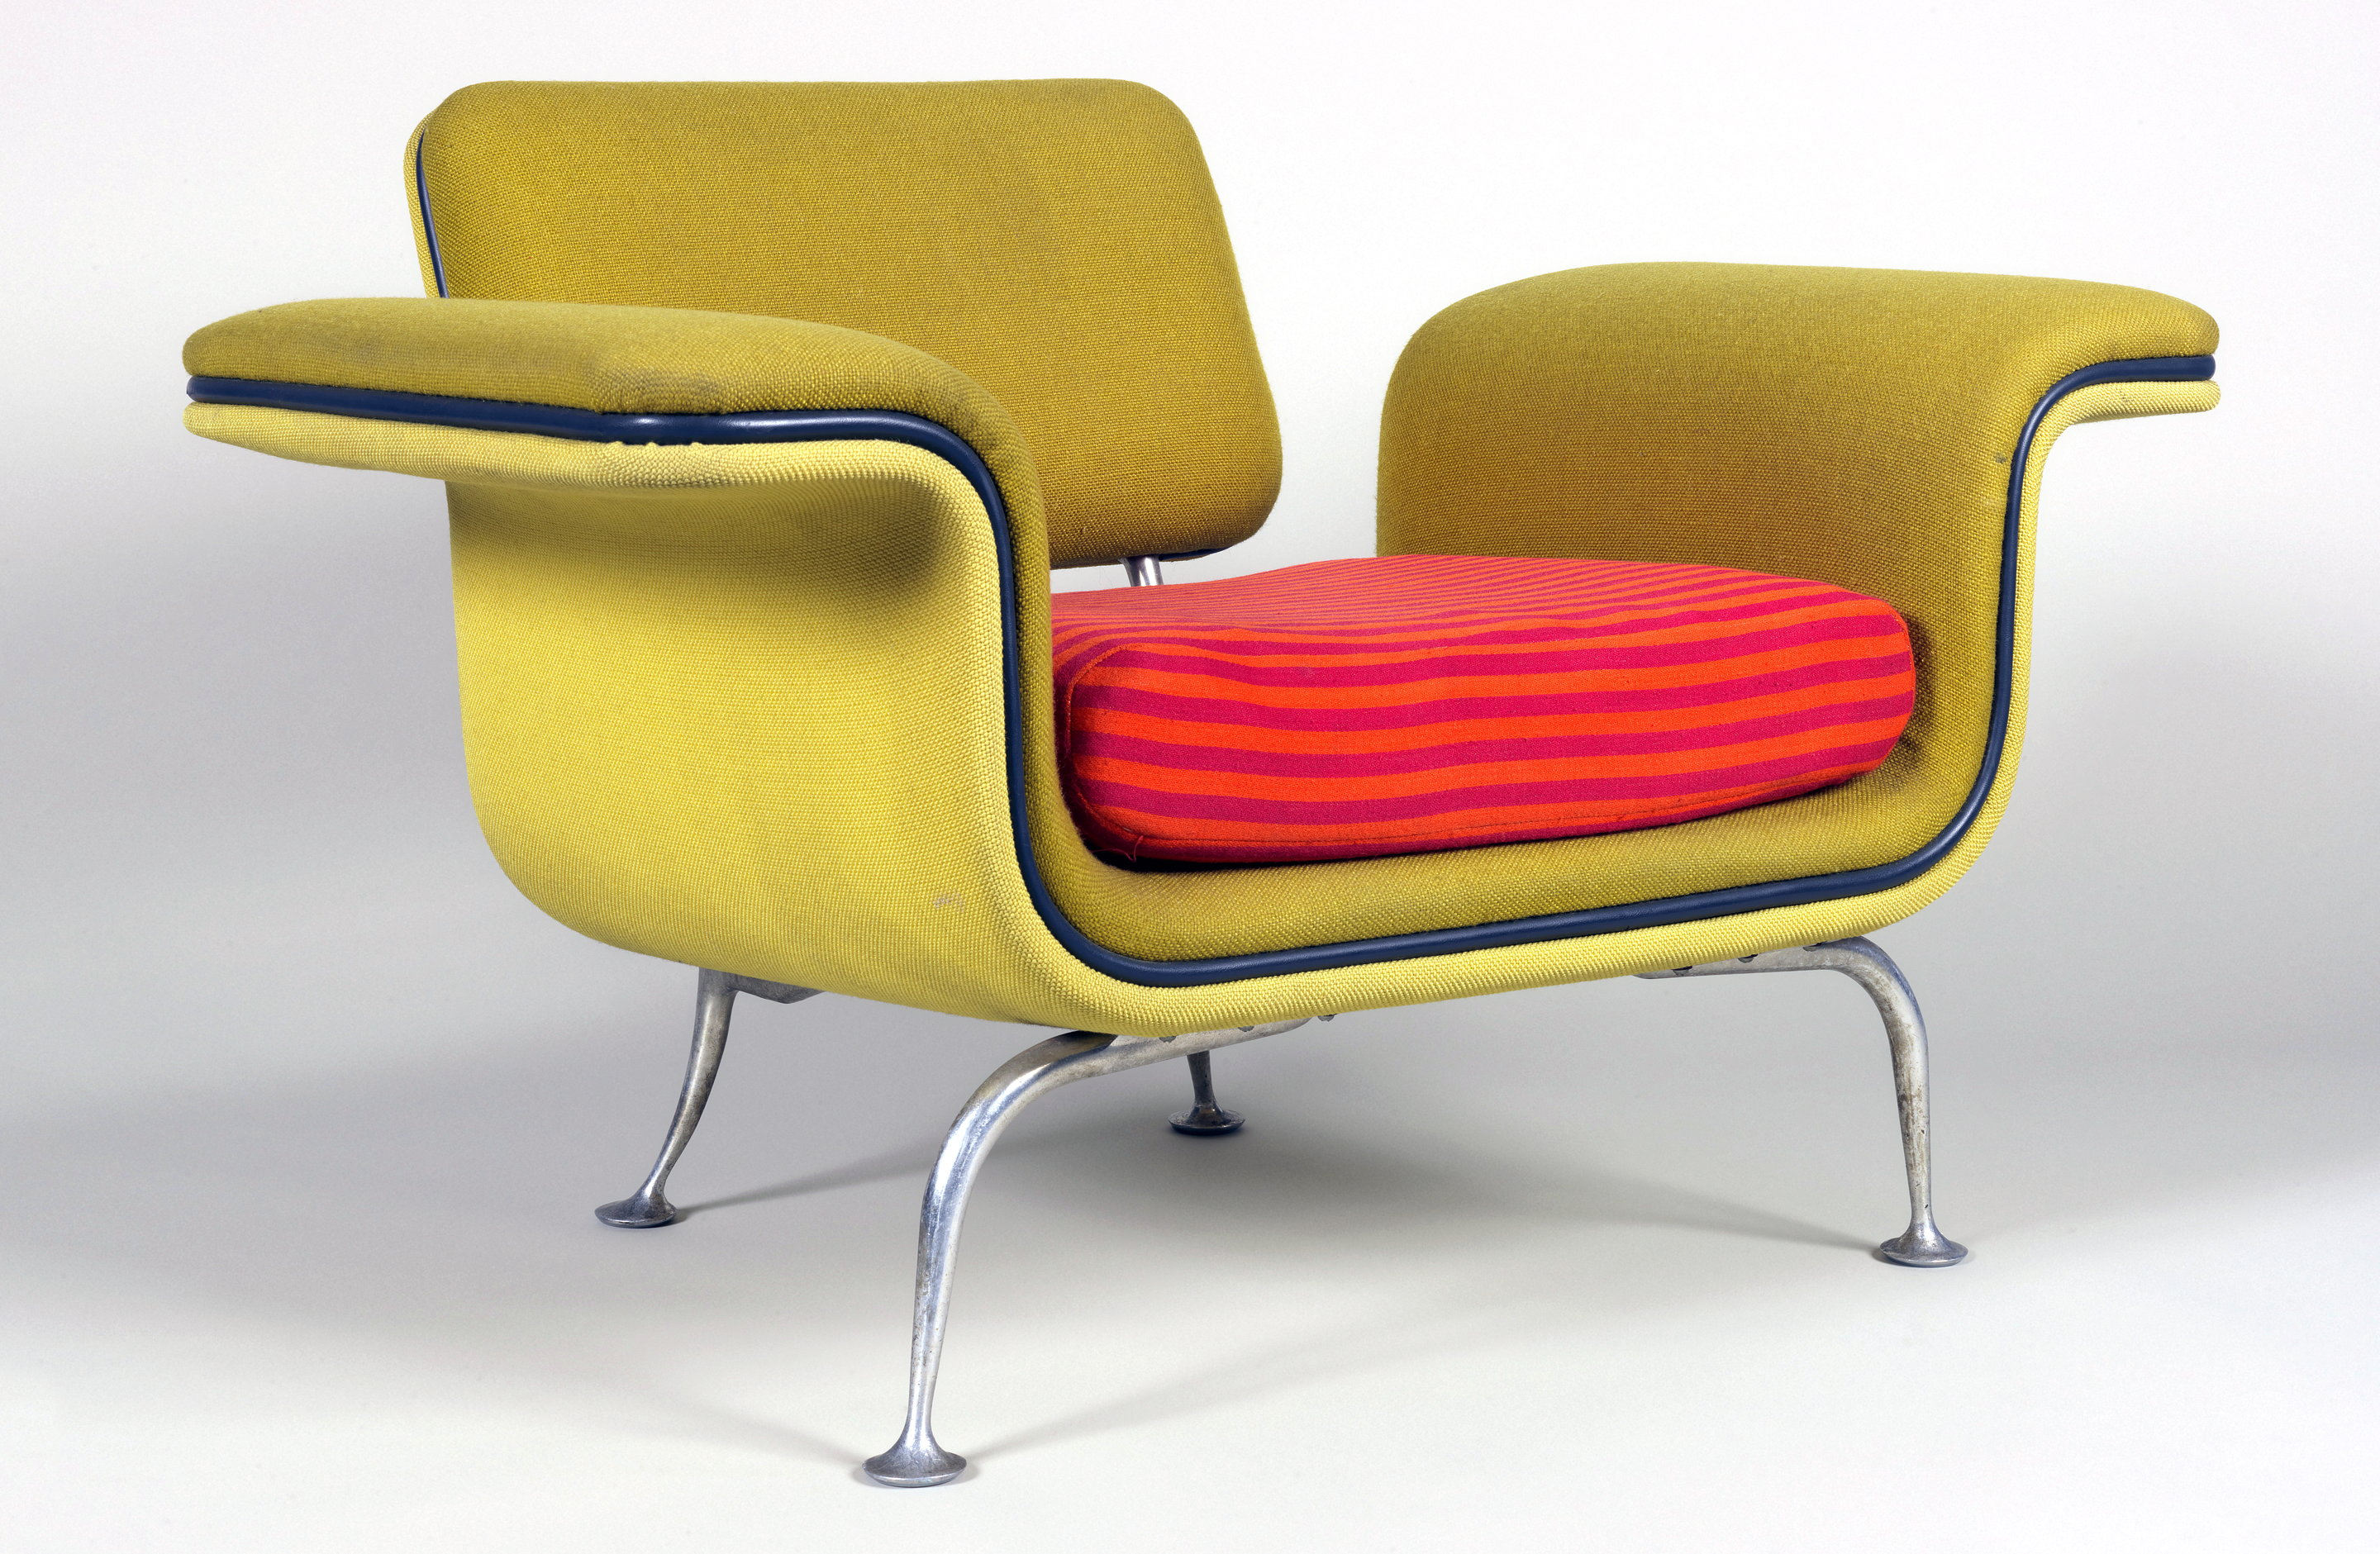 1968 Model 66310 chair for Braniff International Airways